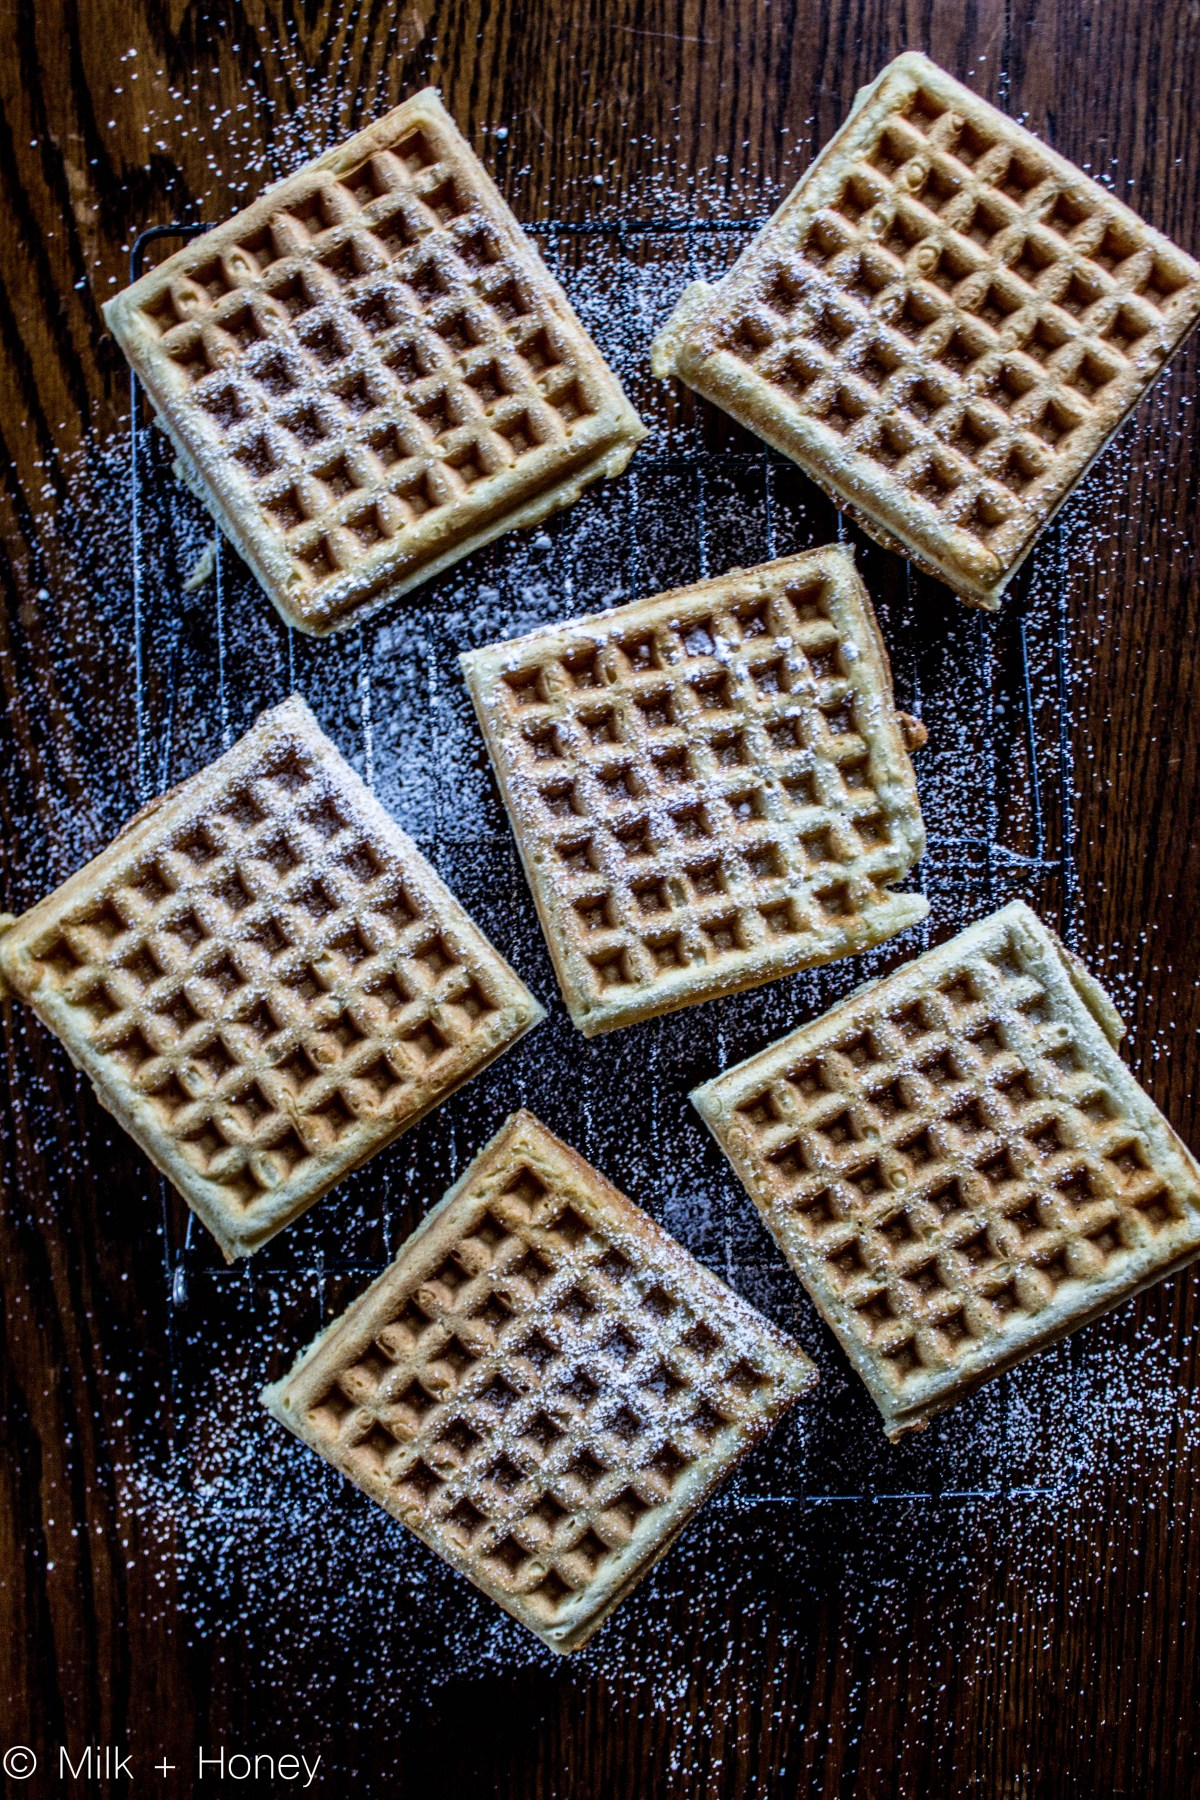 six waffles on a cooling wrack, dusted with powdered sugar, pictured from above